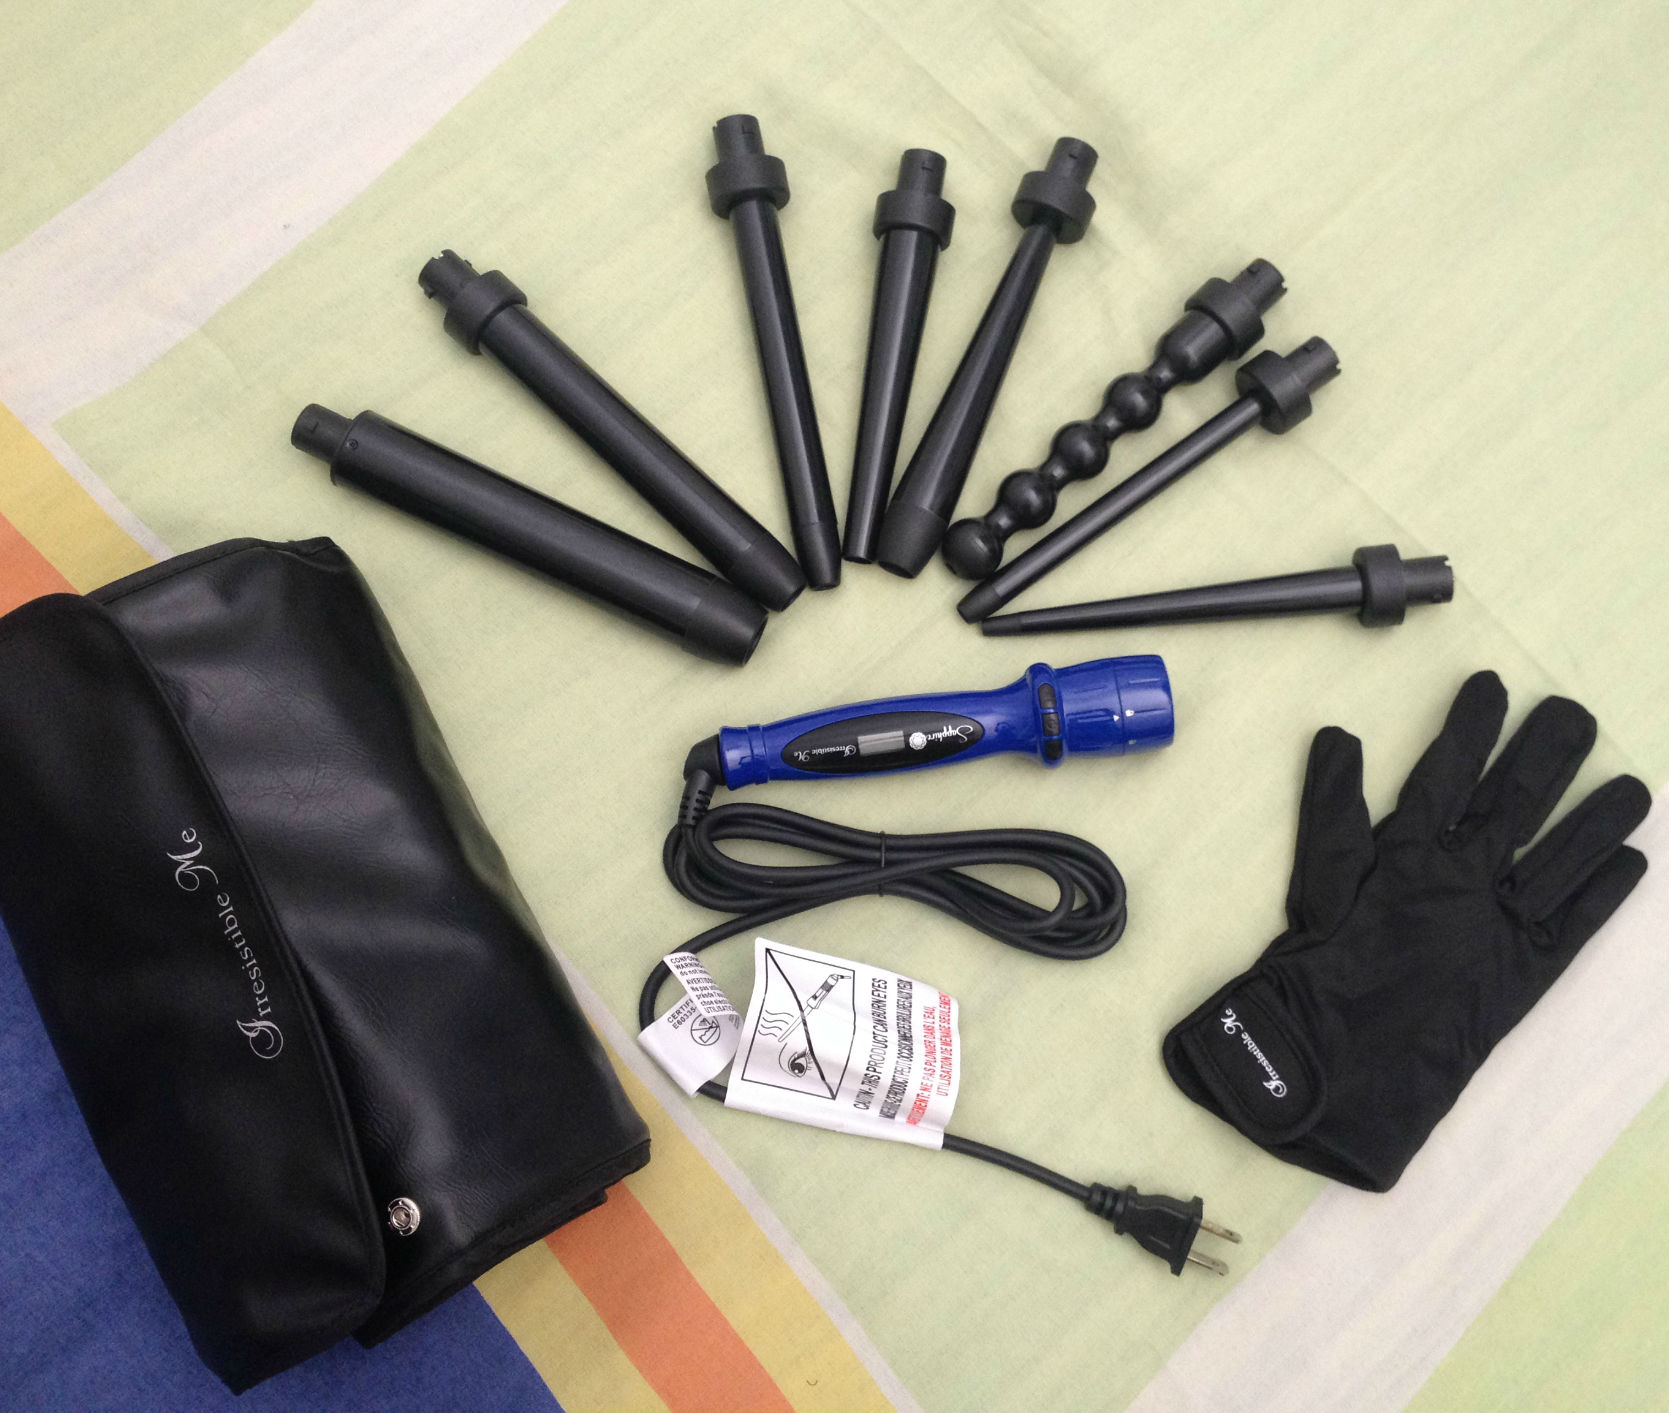 Sapphire 8 in 1 Curler Irresistible Me